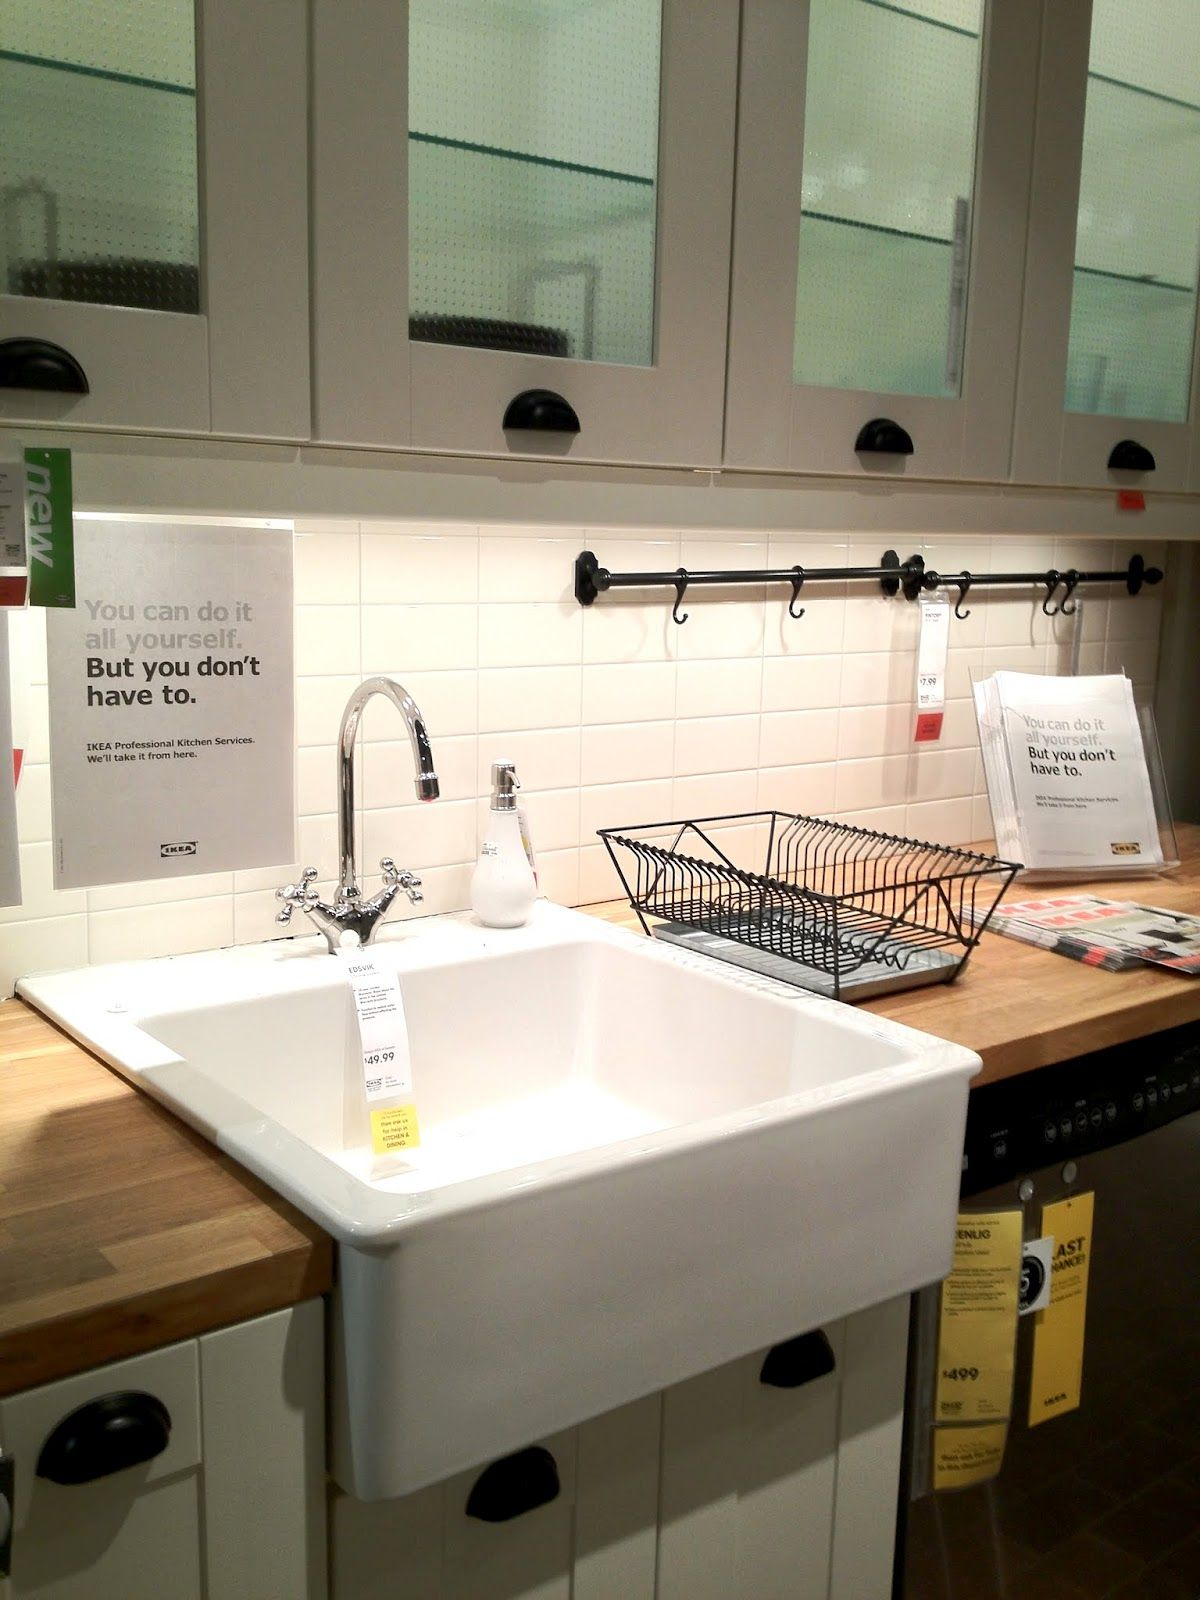 Interior Ikea Tile Backsplash appealing ikea farmhouse sink for your kitchen design tile backsplash with for